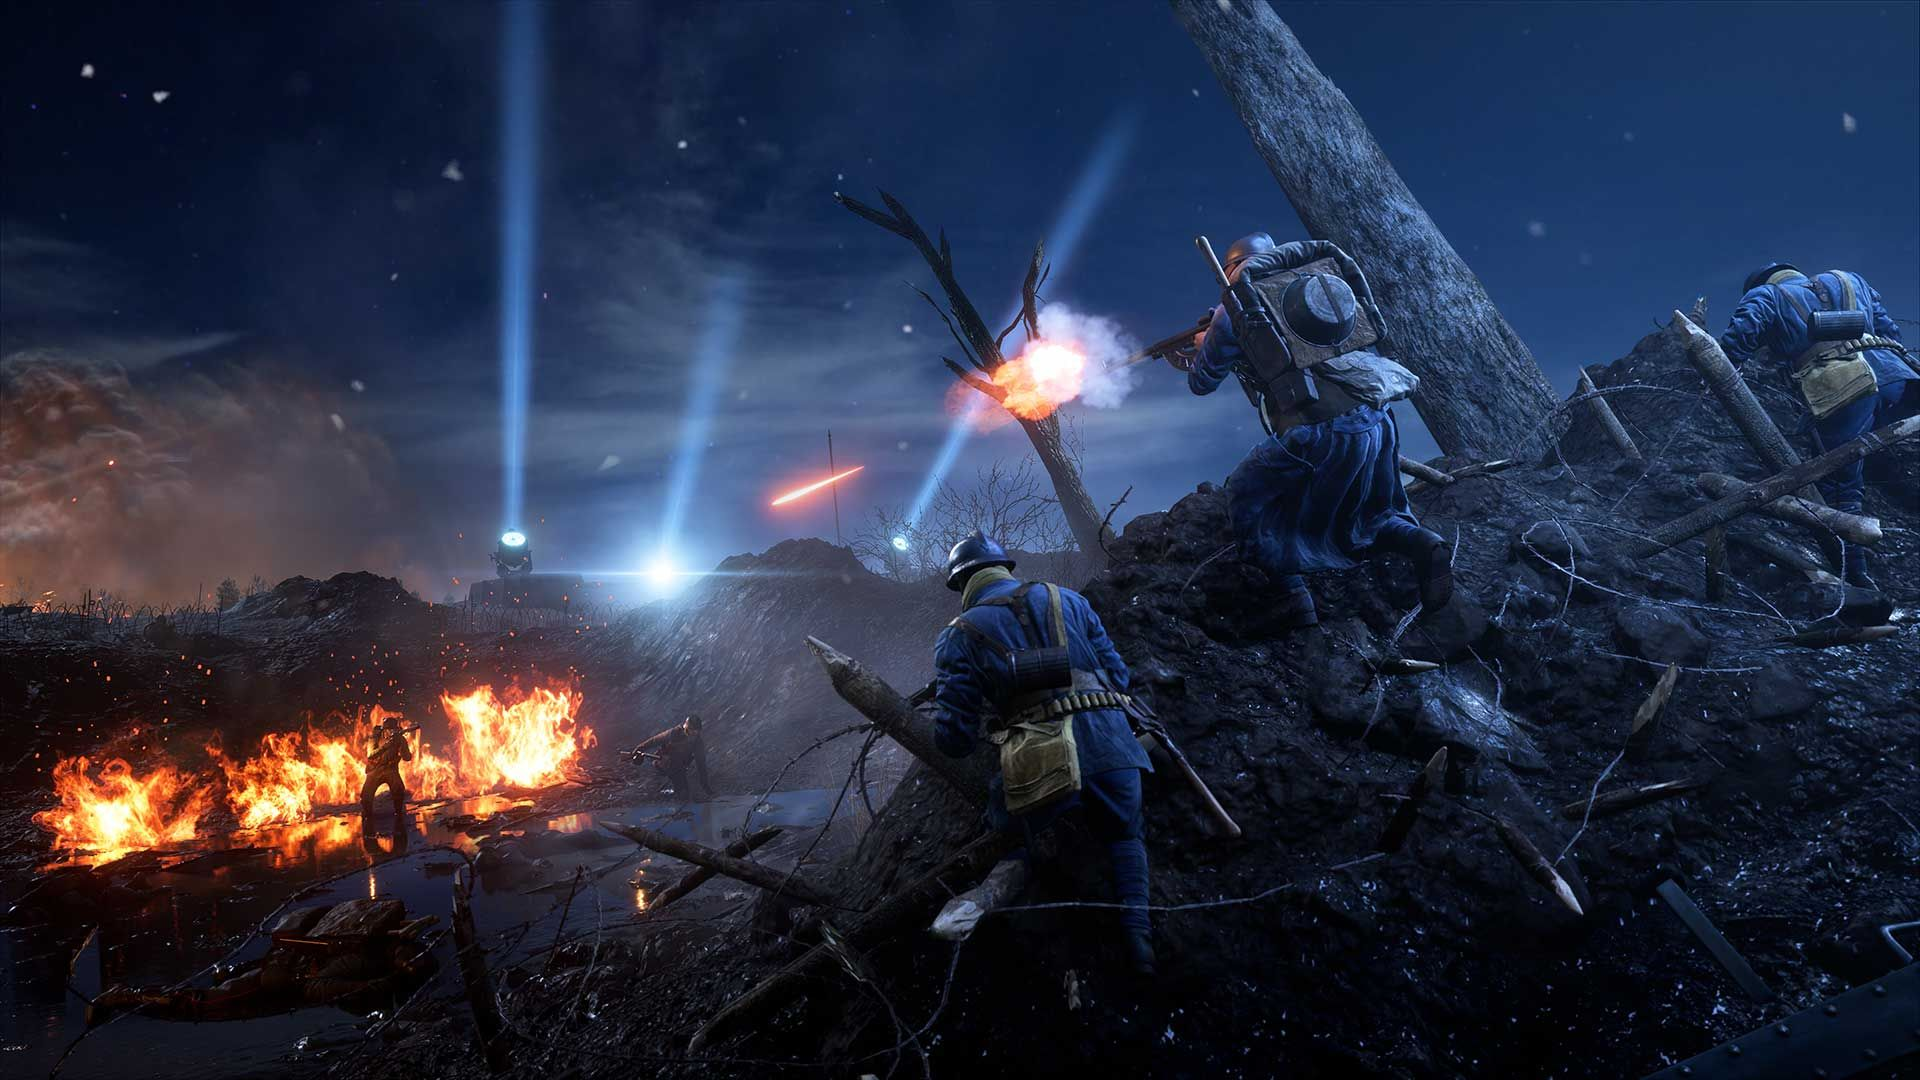 'Battlefield V' Rumors Say 2018 Game Is EA's 'Call Of Duty: WWII'